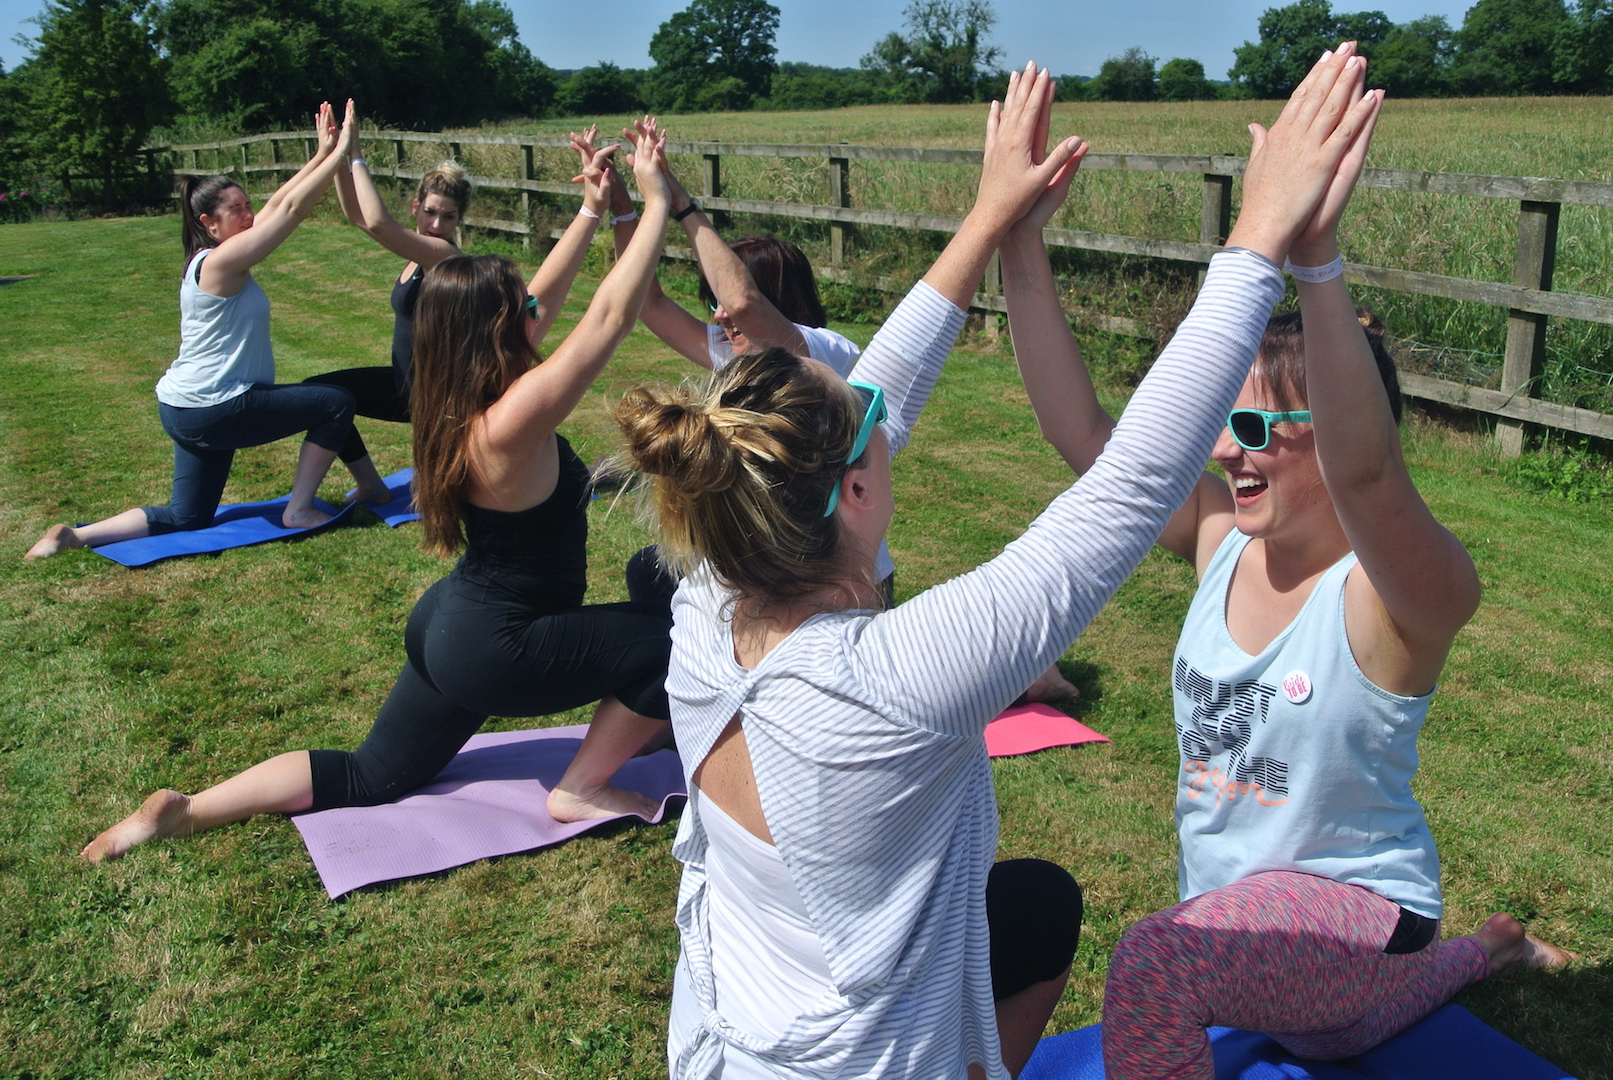 hen Partner yoga Bath Bristol